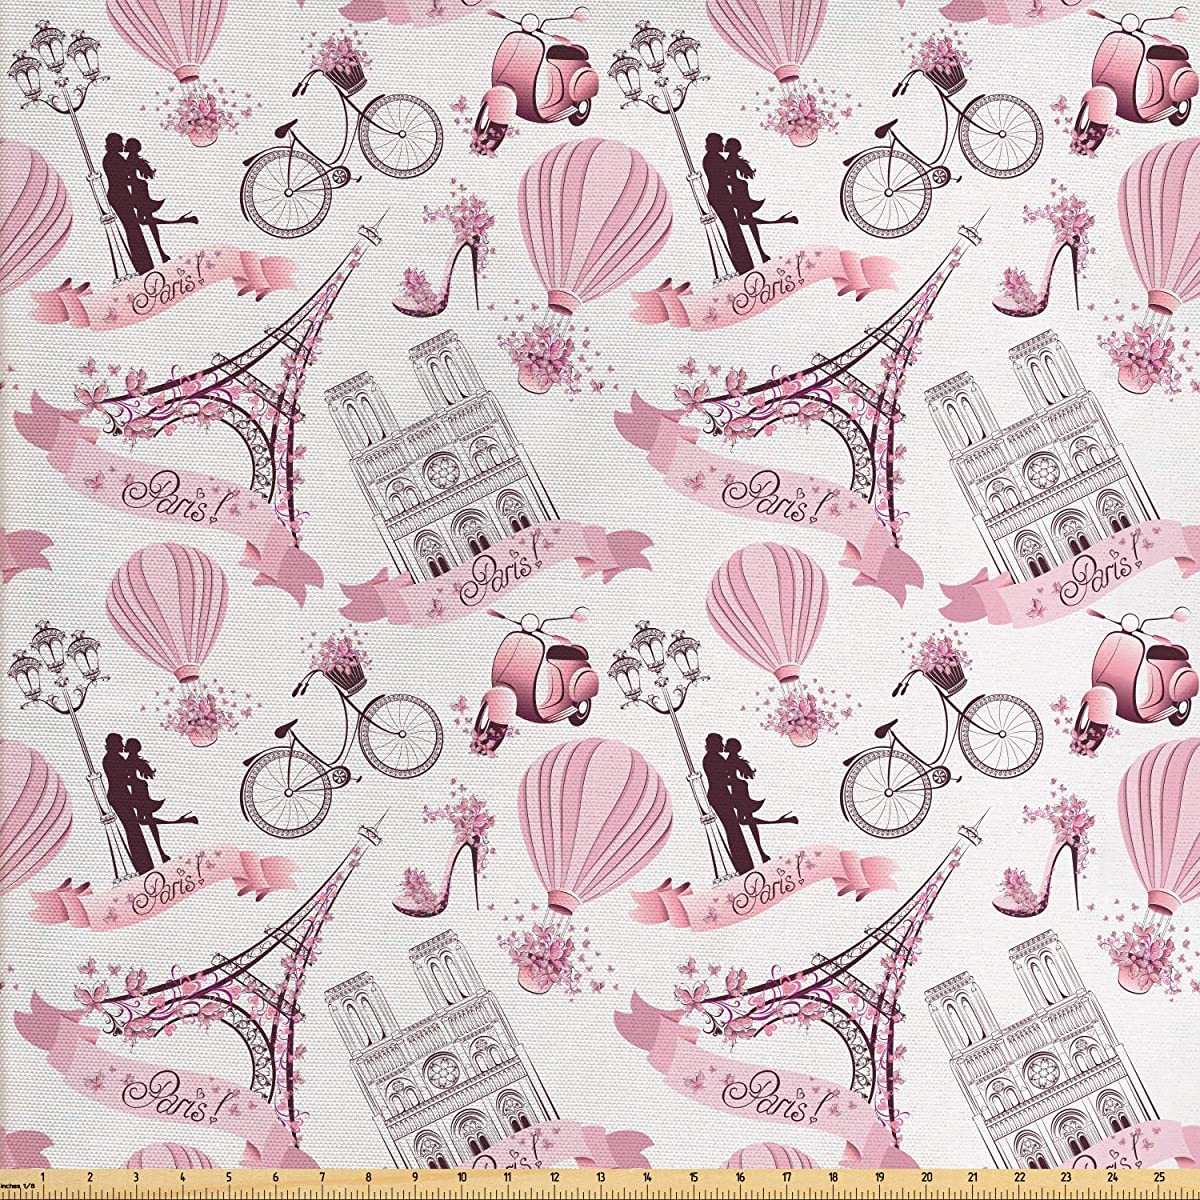 Ambesonne Paris Fabric by The Yard, Valentines Day Theme with Eiffel Kissing Couple Hot Air Balloon Wedding Concept, Decorative Fabric for Upholstery and Home Accents, 1 Yard, Baby Pink Rose k94355278